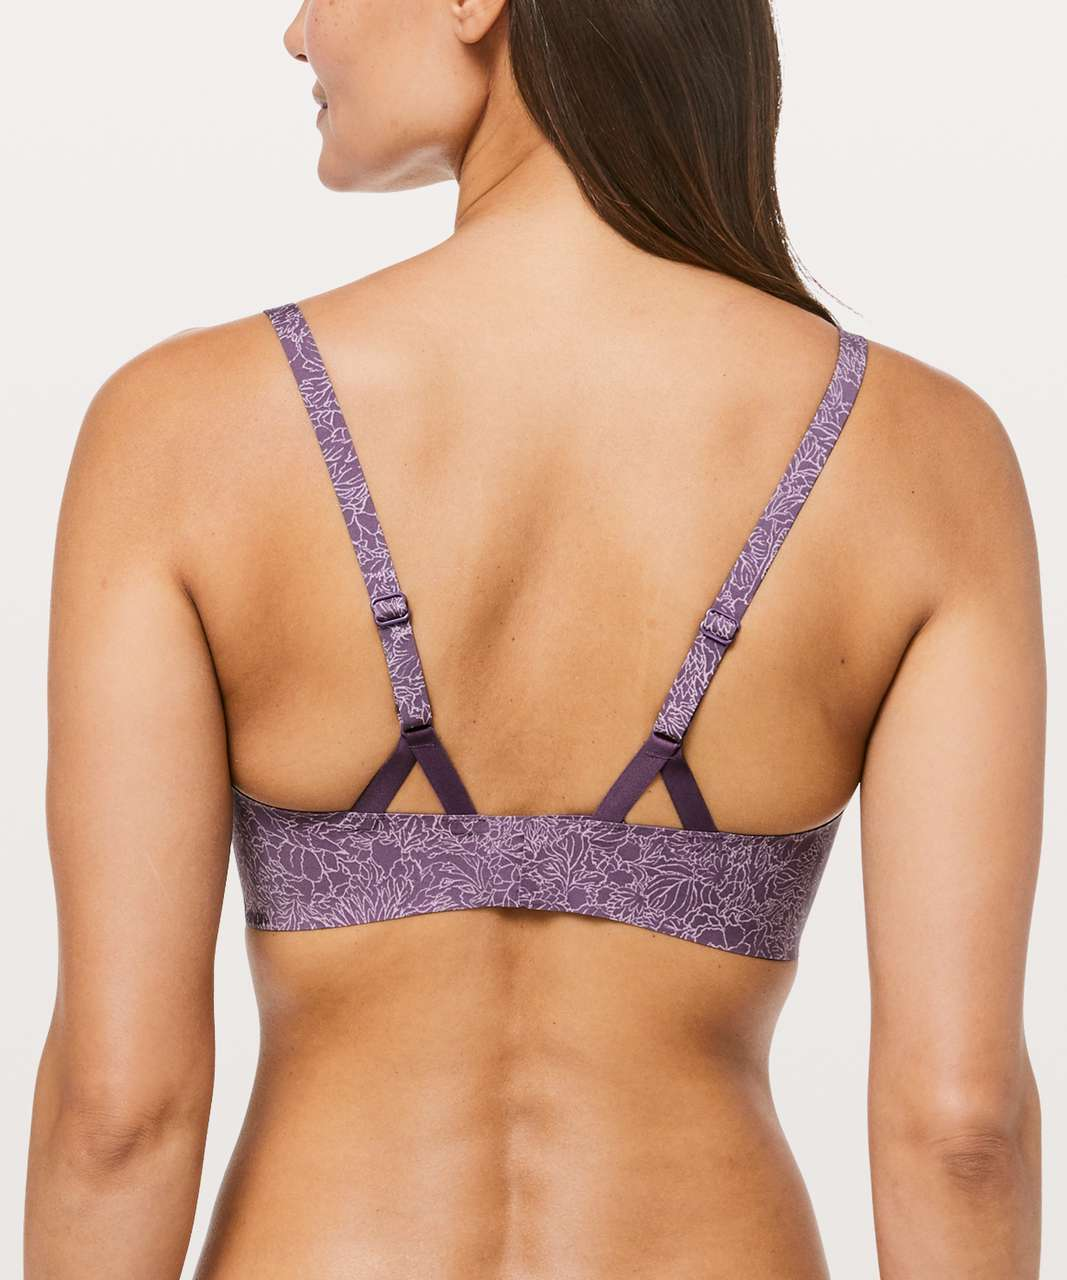 Lululemon Take Shape Bra - Arabesque Antoinette Smoky Quartz